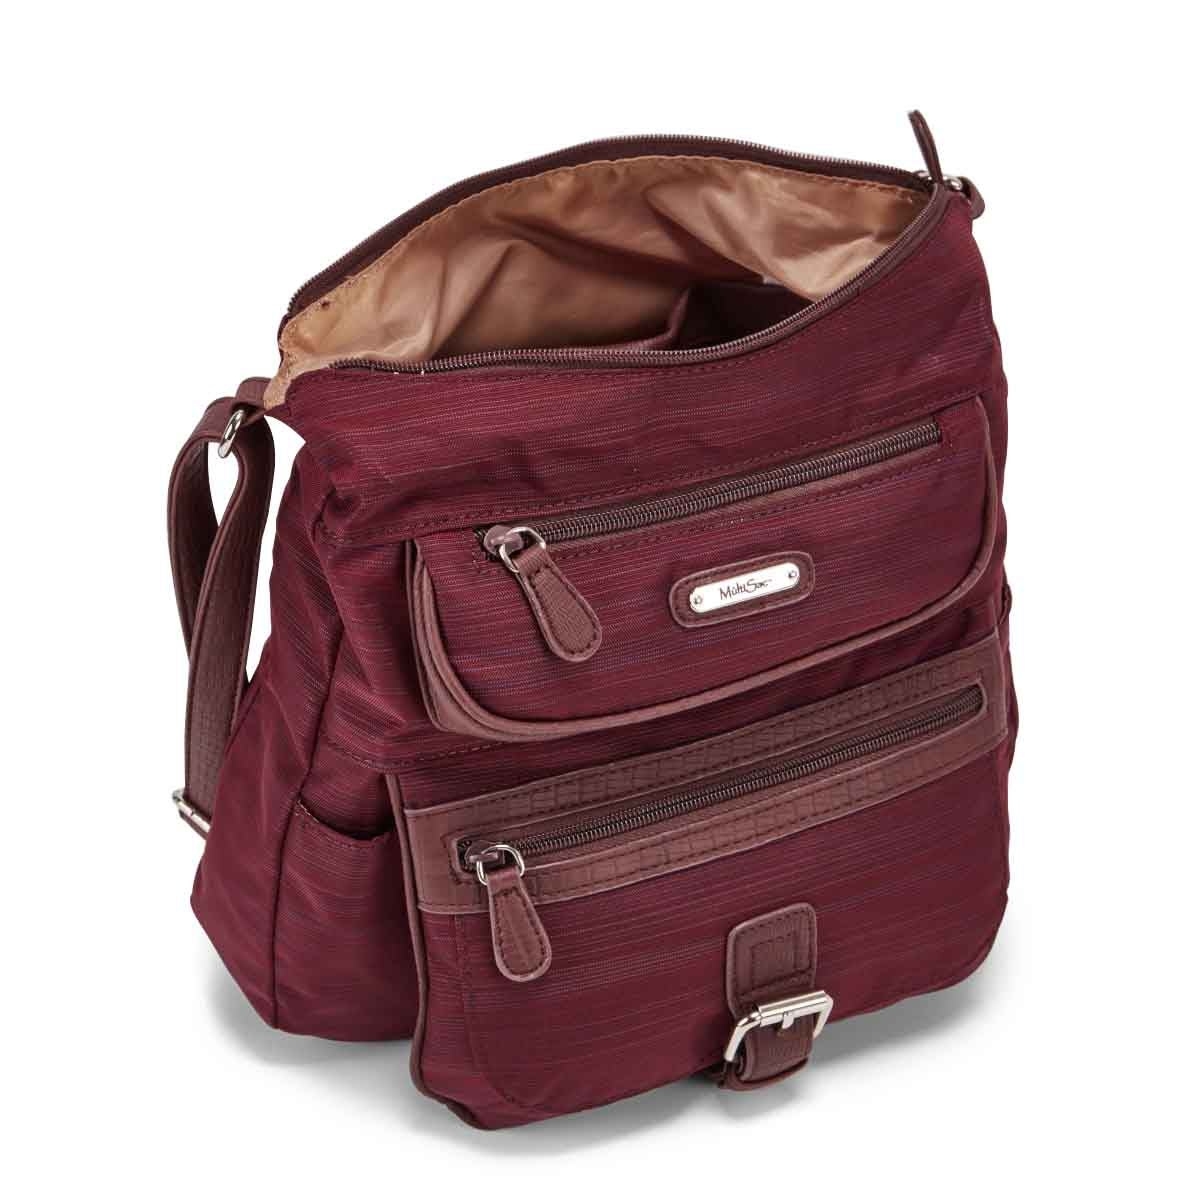 Lds large burgundy crossbody